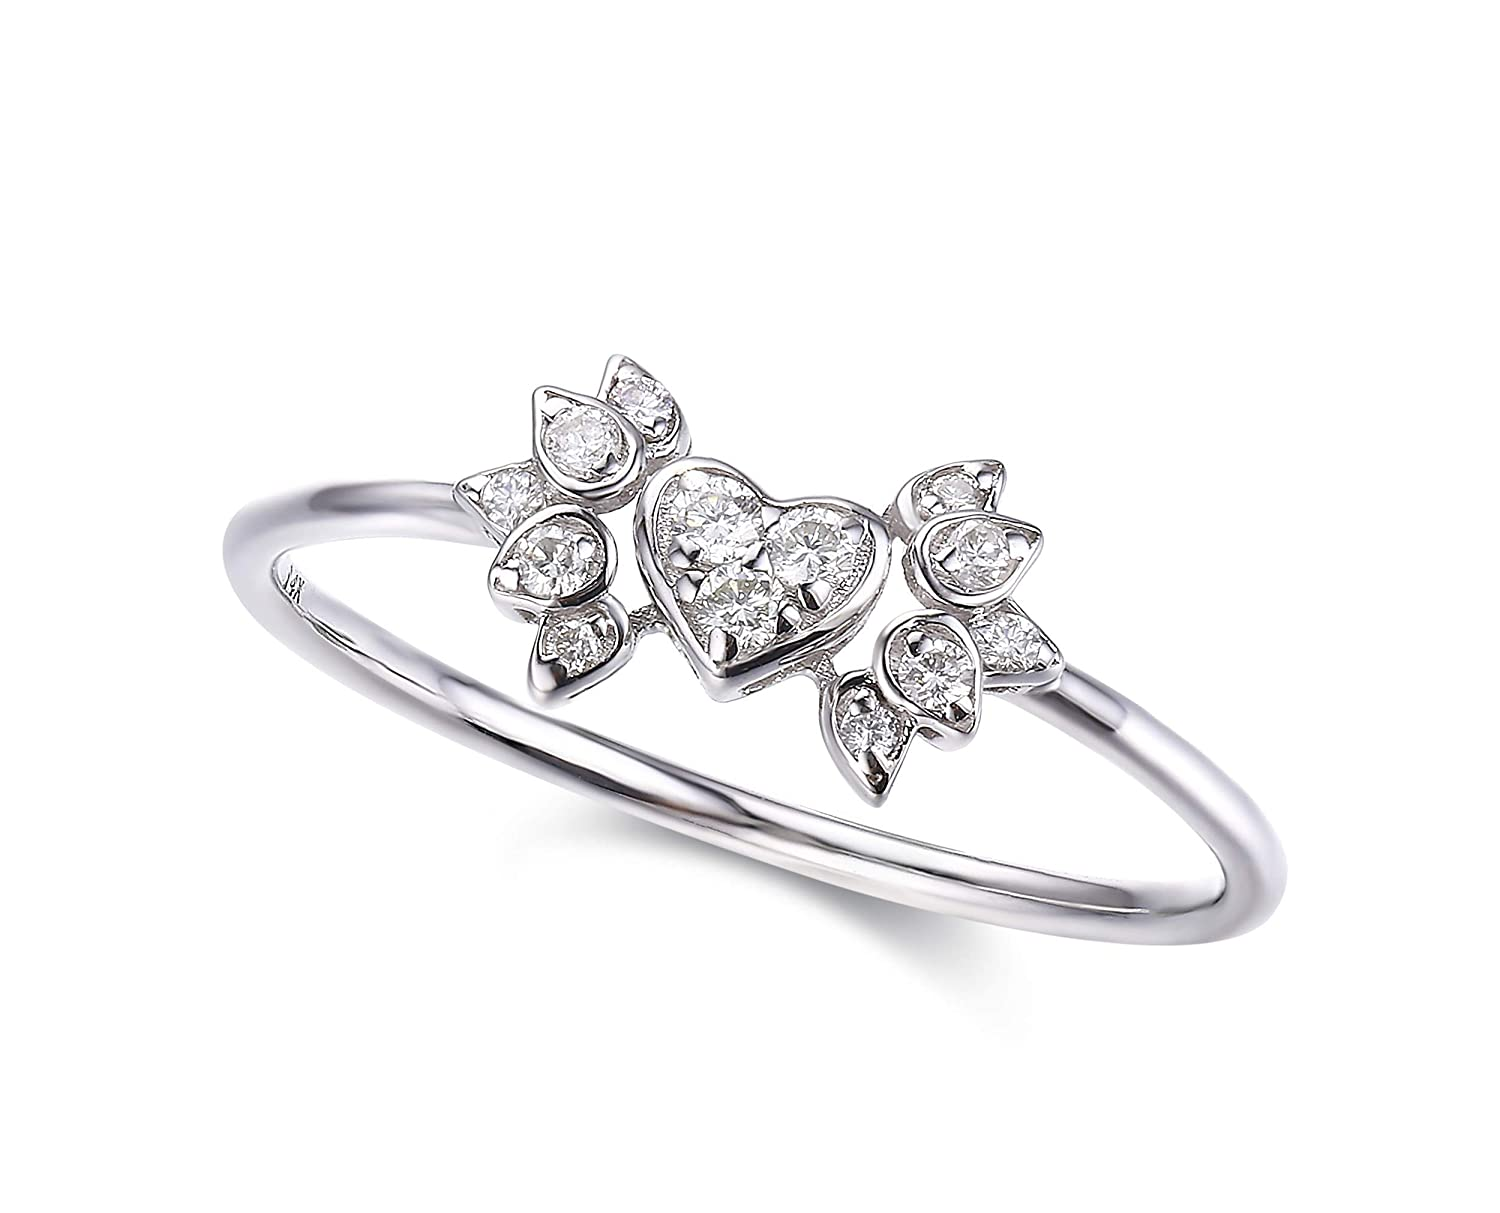 Heart Engagement Ring In Solid 18k White Gold Alternative Wedding Unique Angel Wing Diamond Simple Shaped Band: Simple Unique Wedding Rings At Reisefeber.org